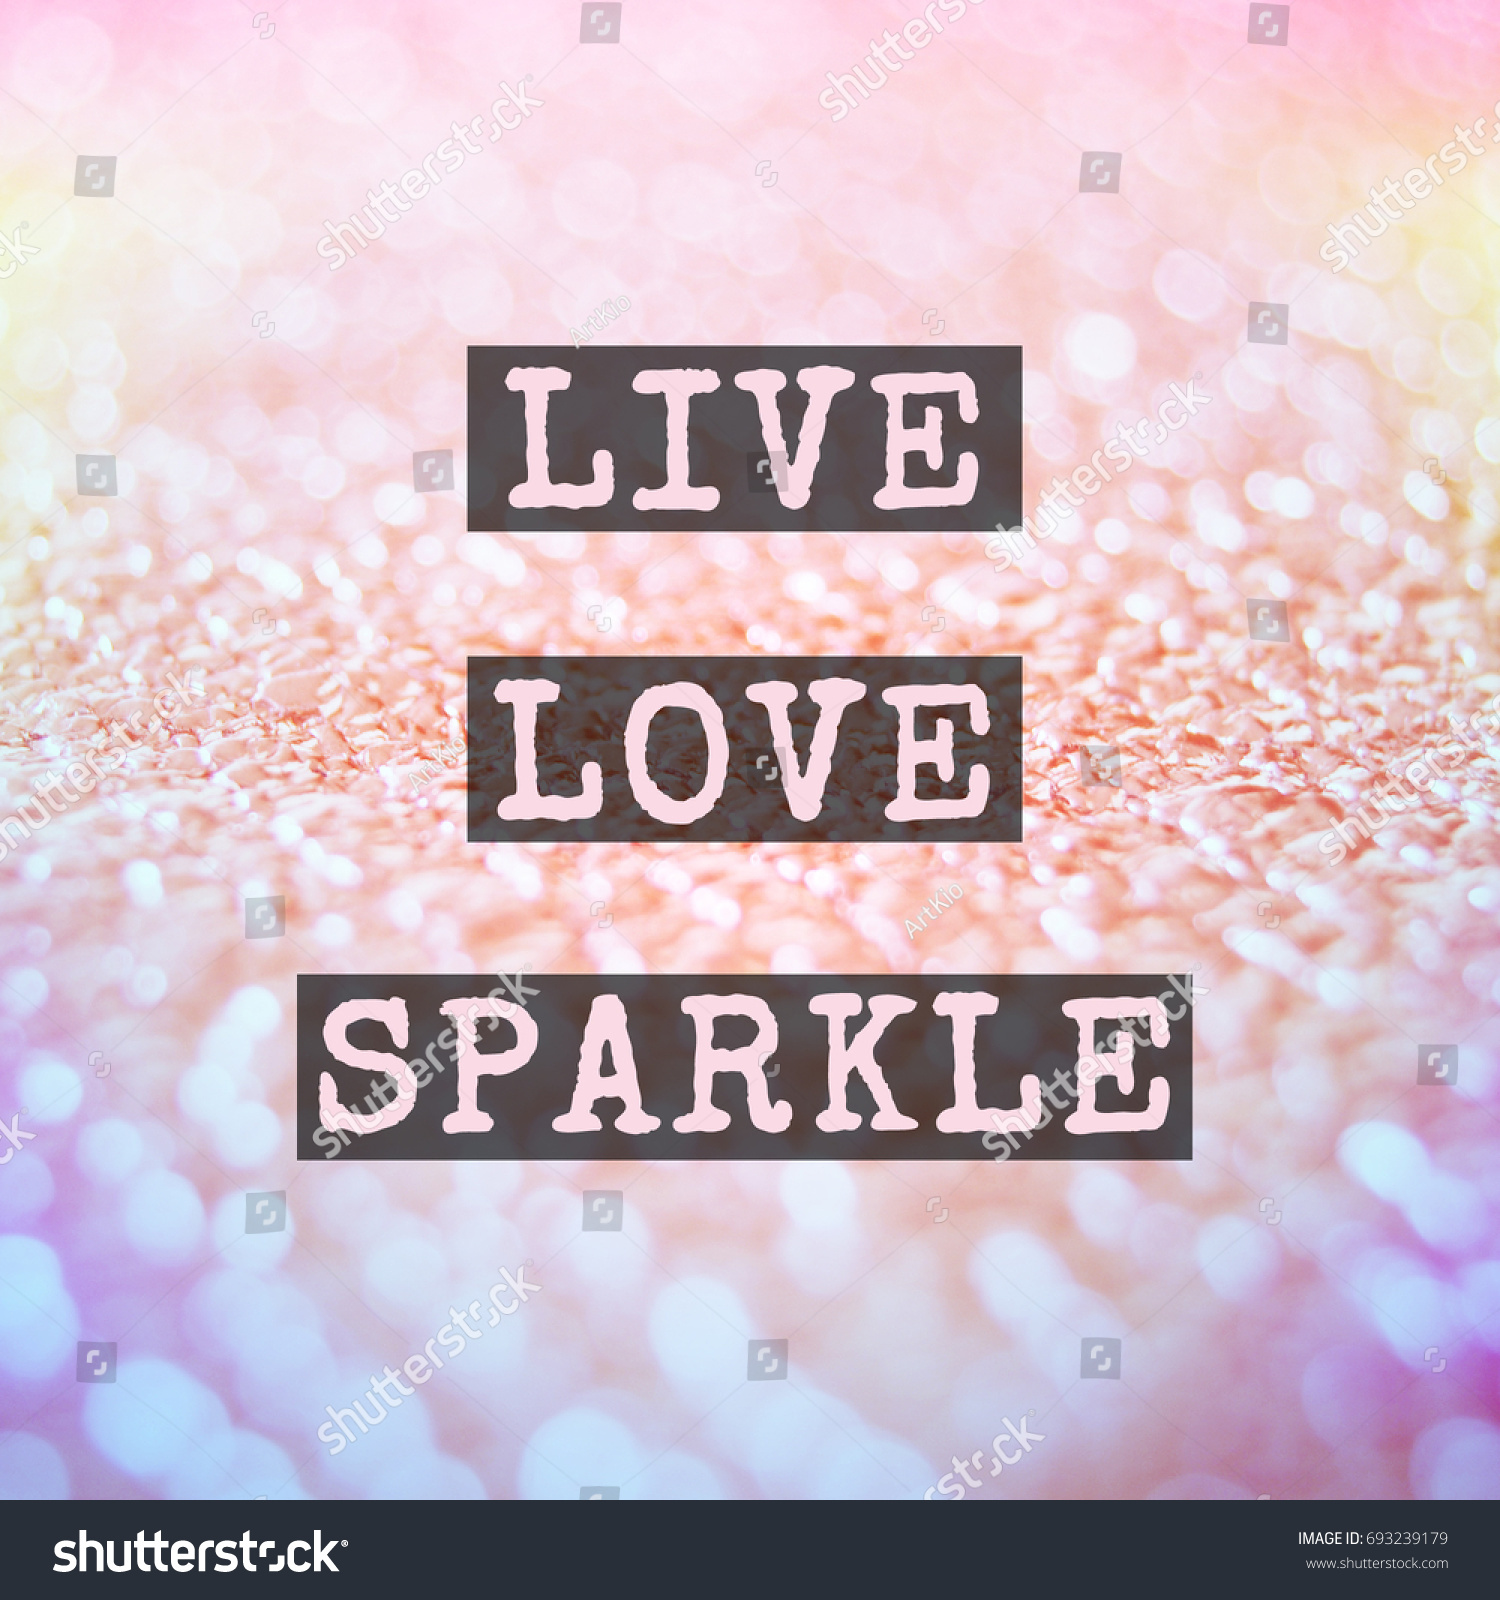 Inspirational Quotes Quotes Quotesquotes About Lifeinspirational Motivating Quotesparkle